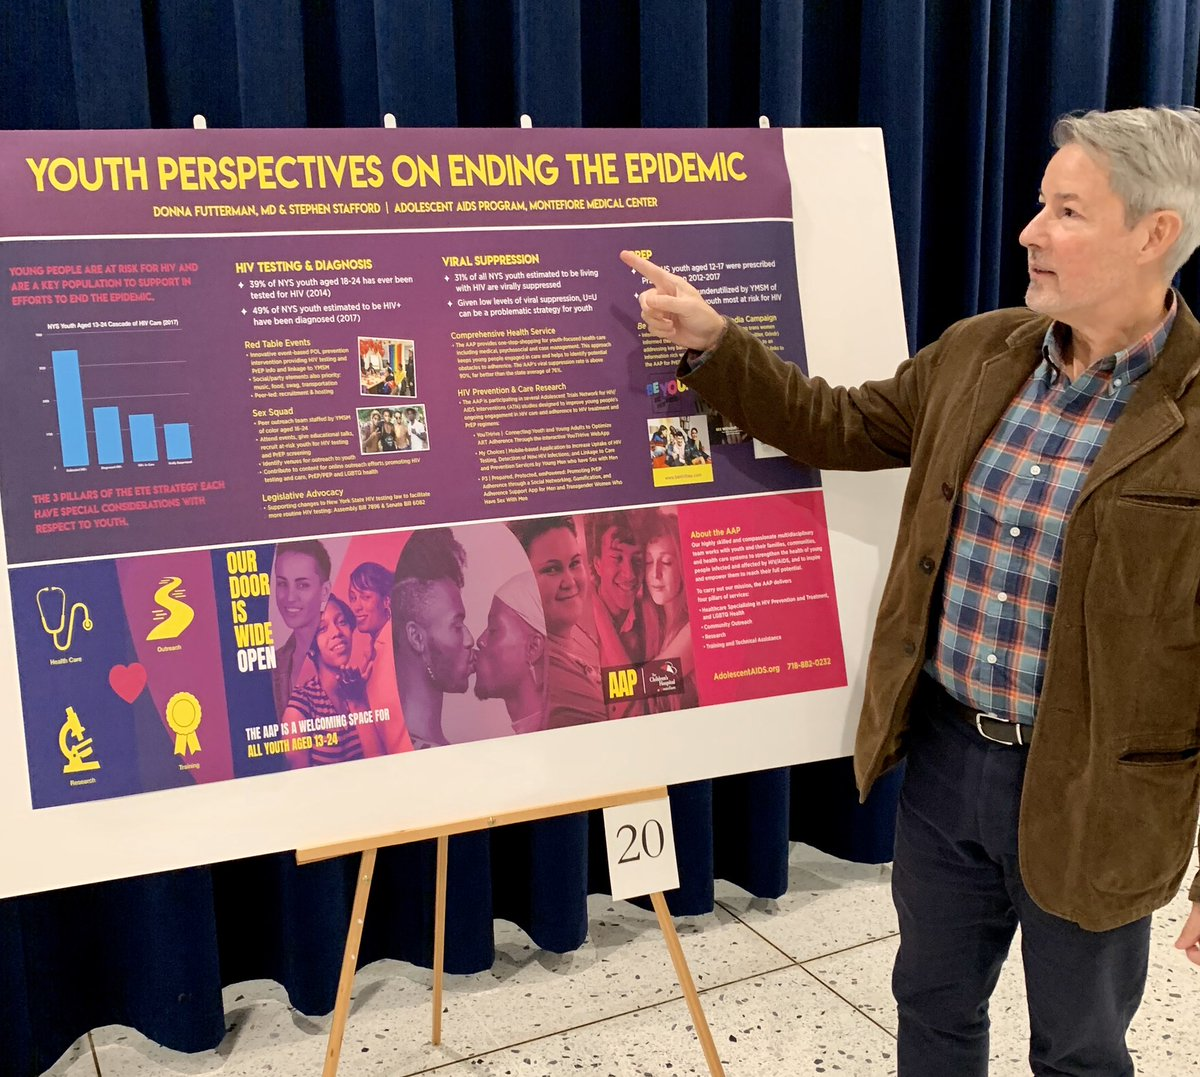 We're in Albany today with colleagues from around the state united in Ending the Epidemic! Proud to present the AAP's work to improve the HIV Care Cascade for youth.  #ETE2019 <br>http://pic.twitter.com/lE8L8hVbLz